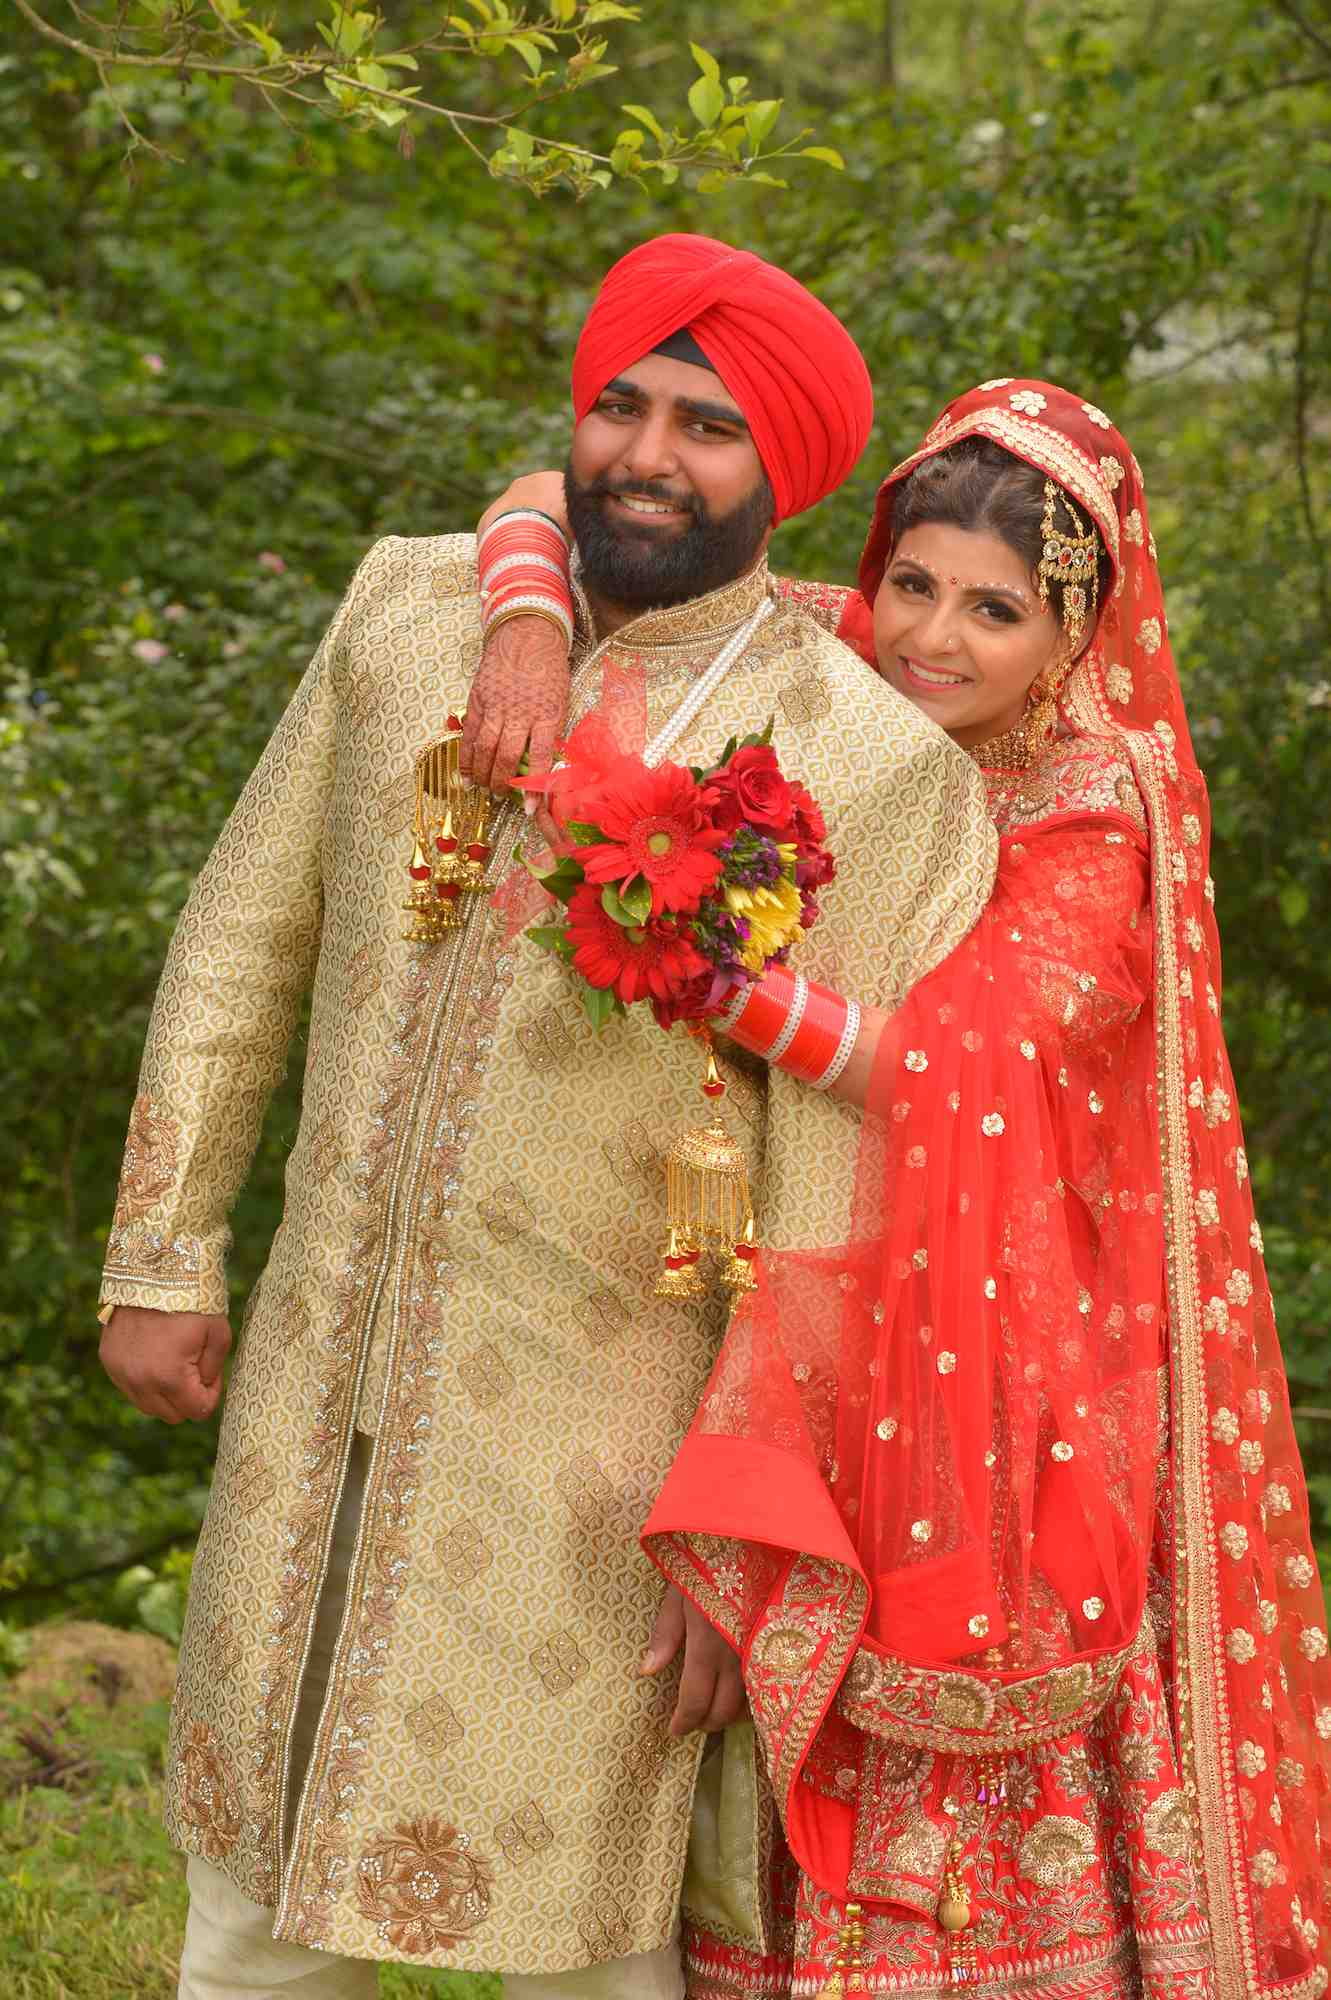 Indian wedding photo w